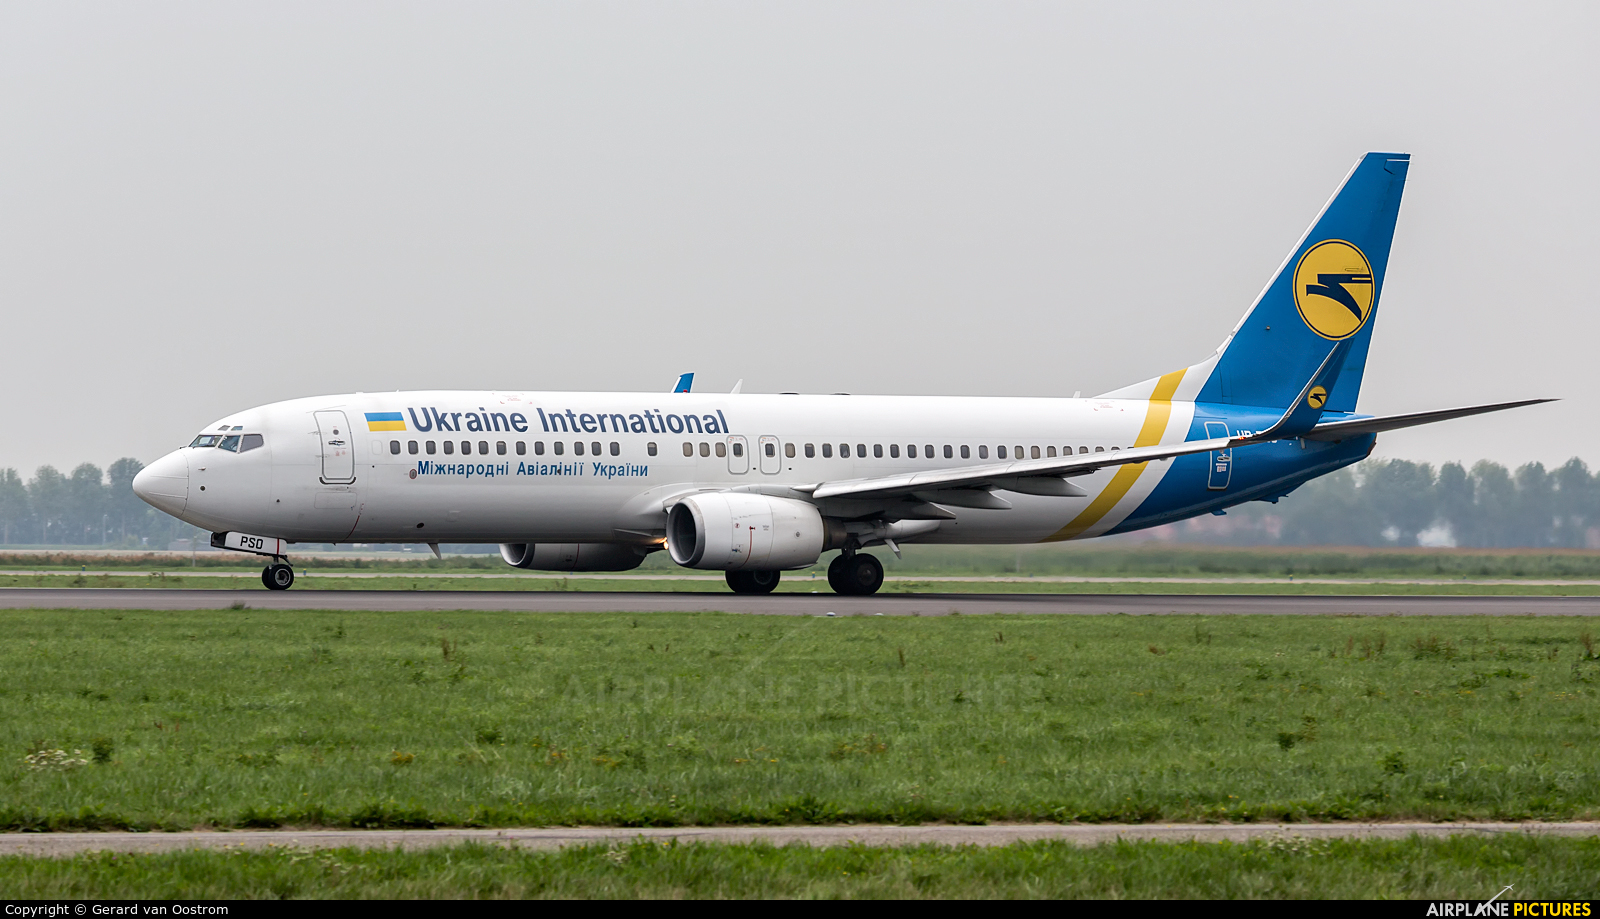 Ukraine National Airlines UR-PSO aircraft at Amsterdam - Schiphol